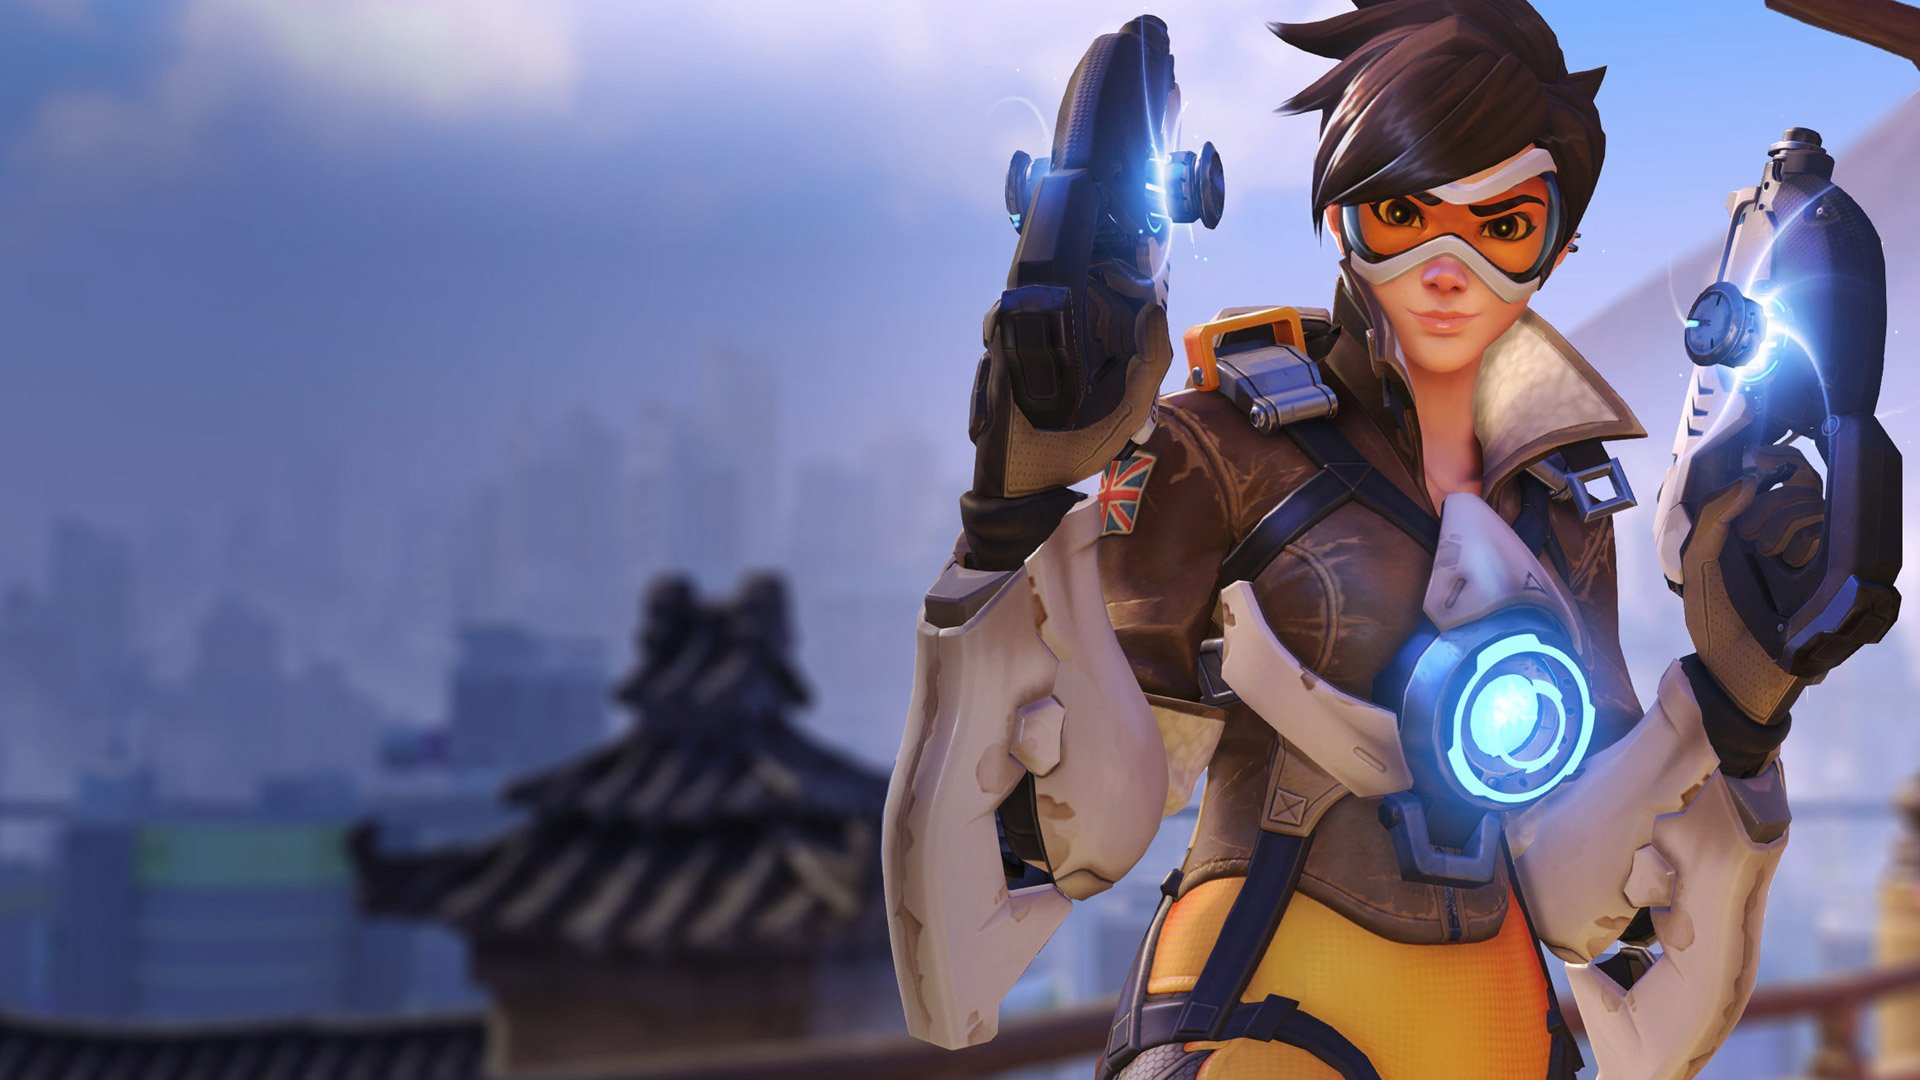 Overwatch Tracer Wallpaper Full Hd Is Cool Wallpapers